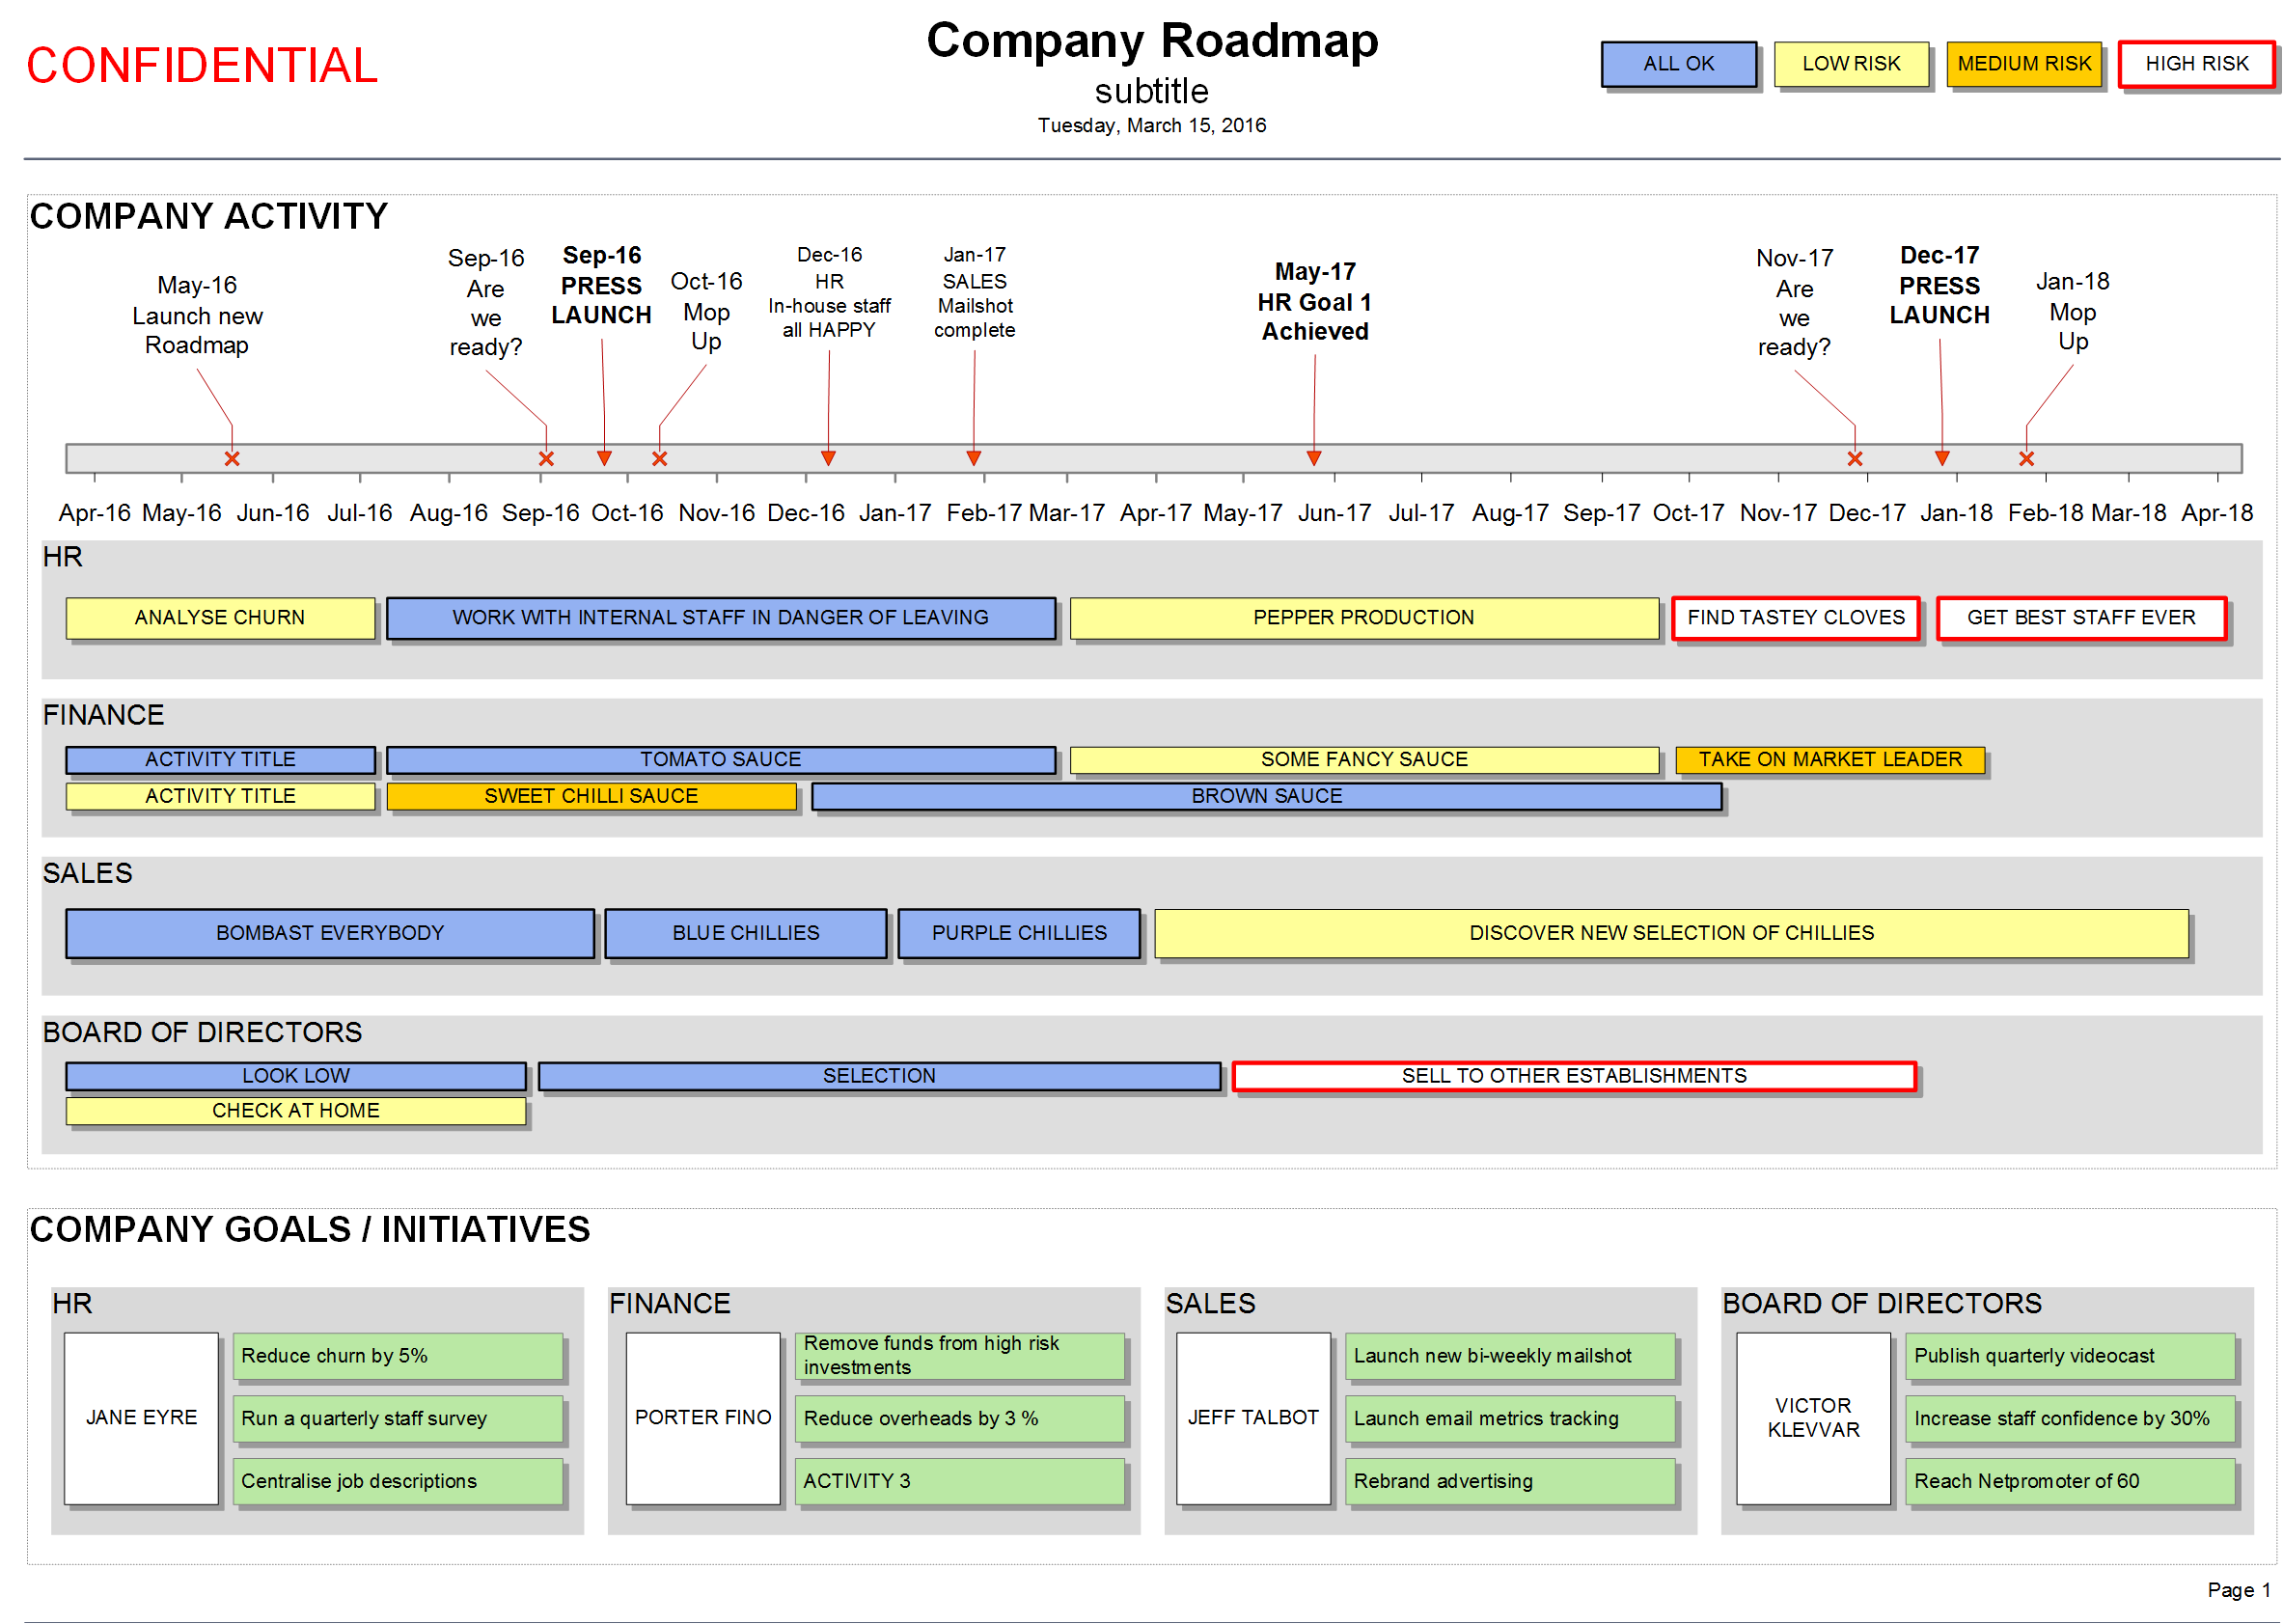 Company roadmap template visio work ideas pinterest this visio company roadmap template communicates your strategy and timeline on 1 clear document take to meetings to create shared understanding quickly cheaphphosting Choice Image